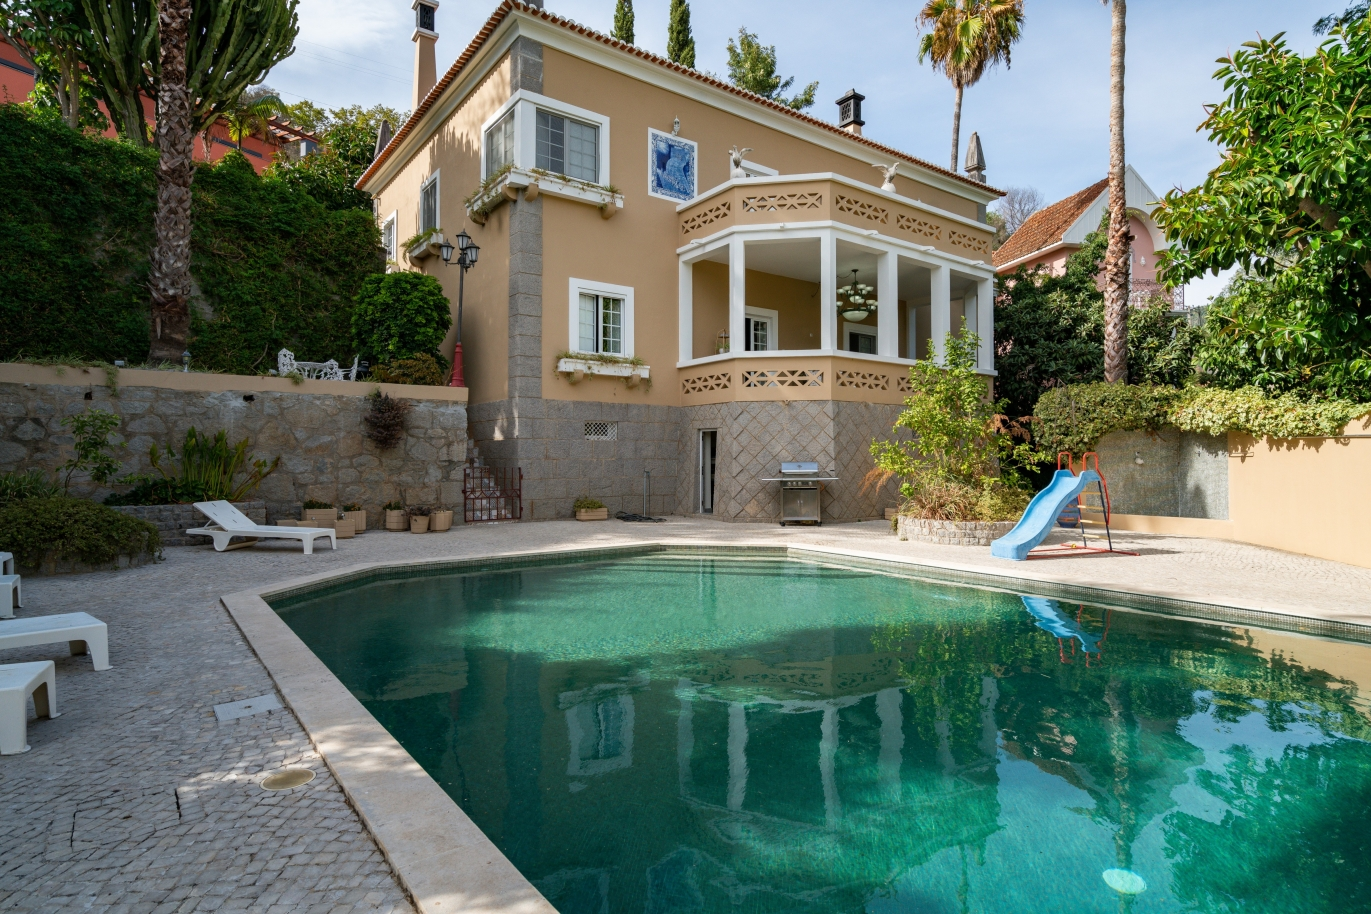 mansion-with-gardens-and-swimming-pool-caldas-de-monchique-algarve